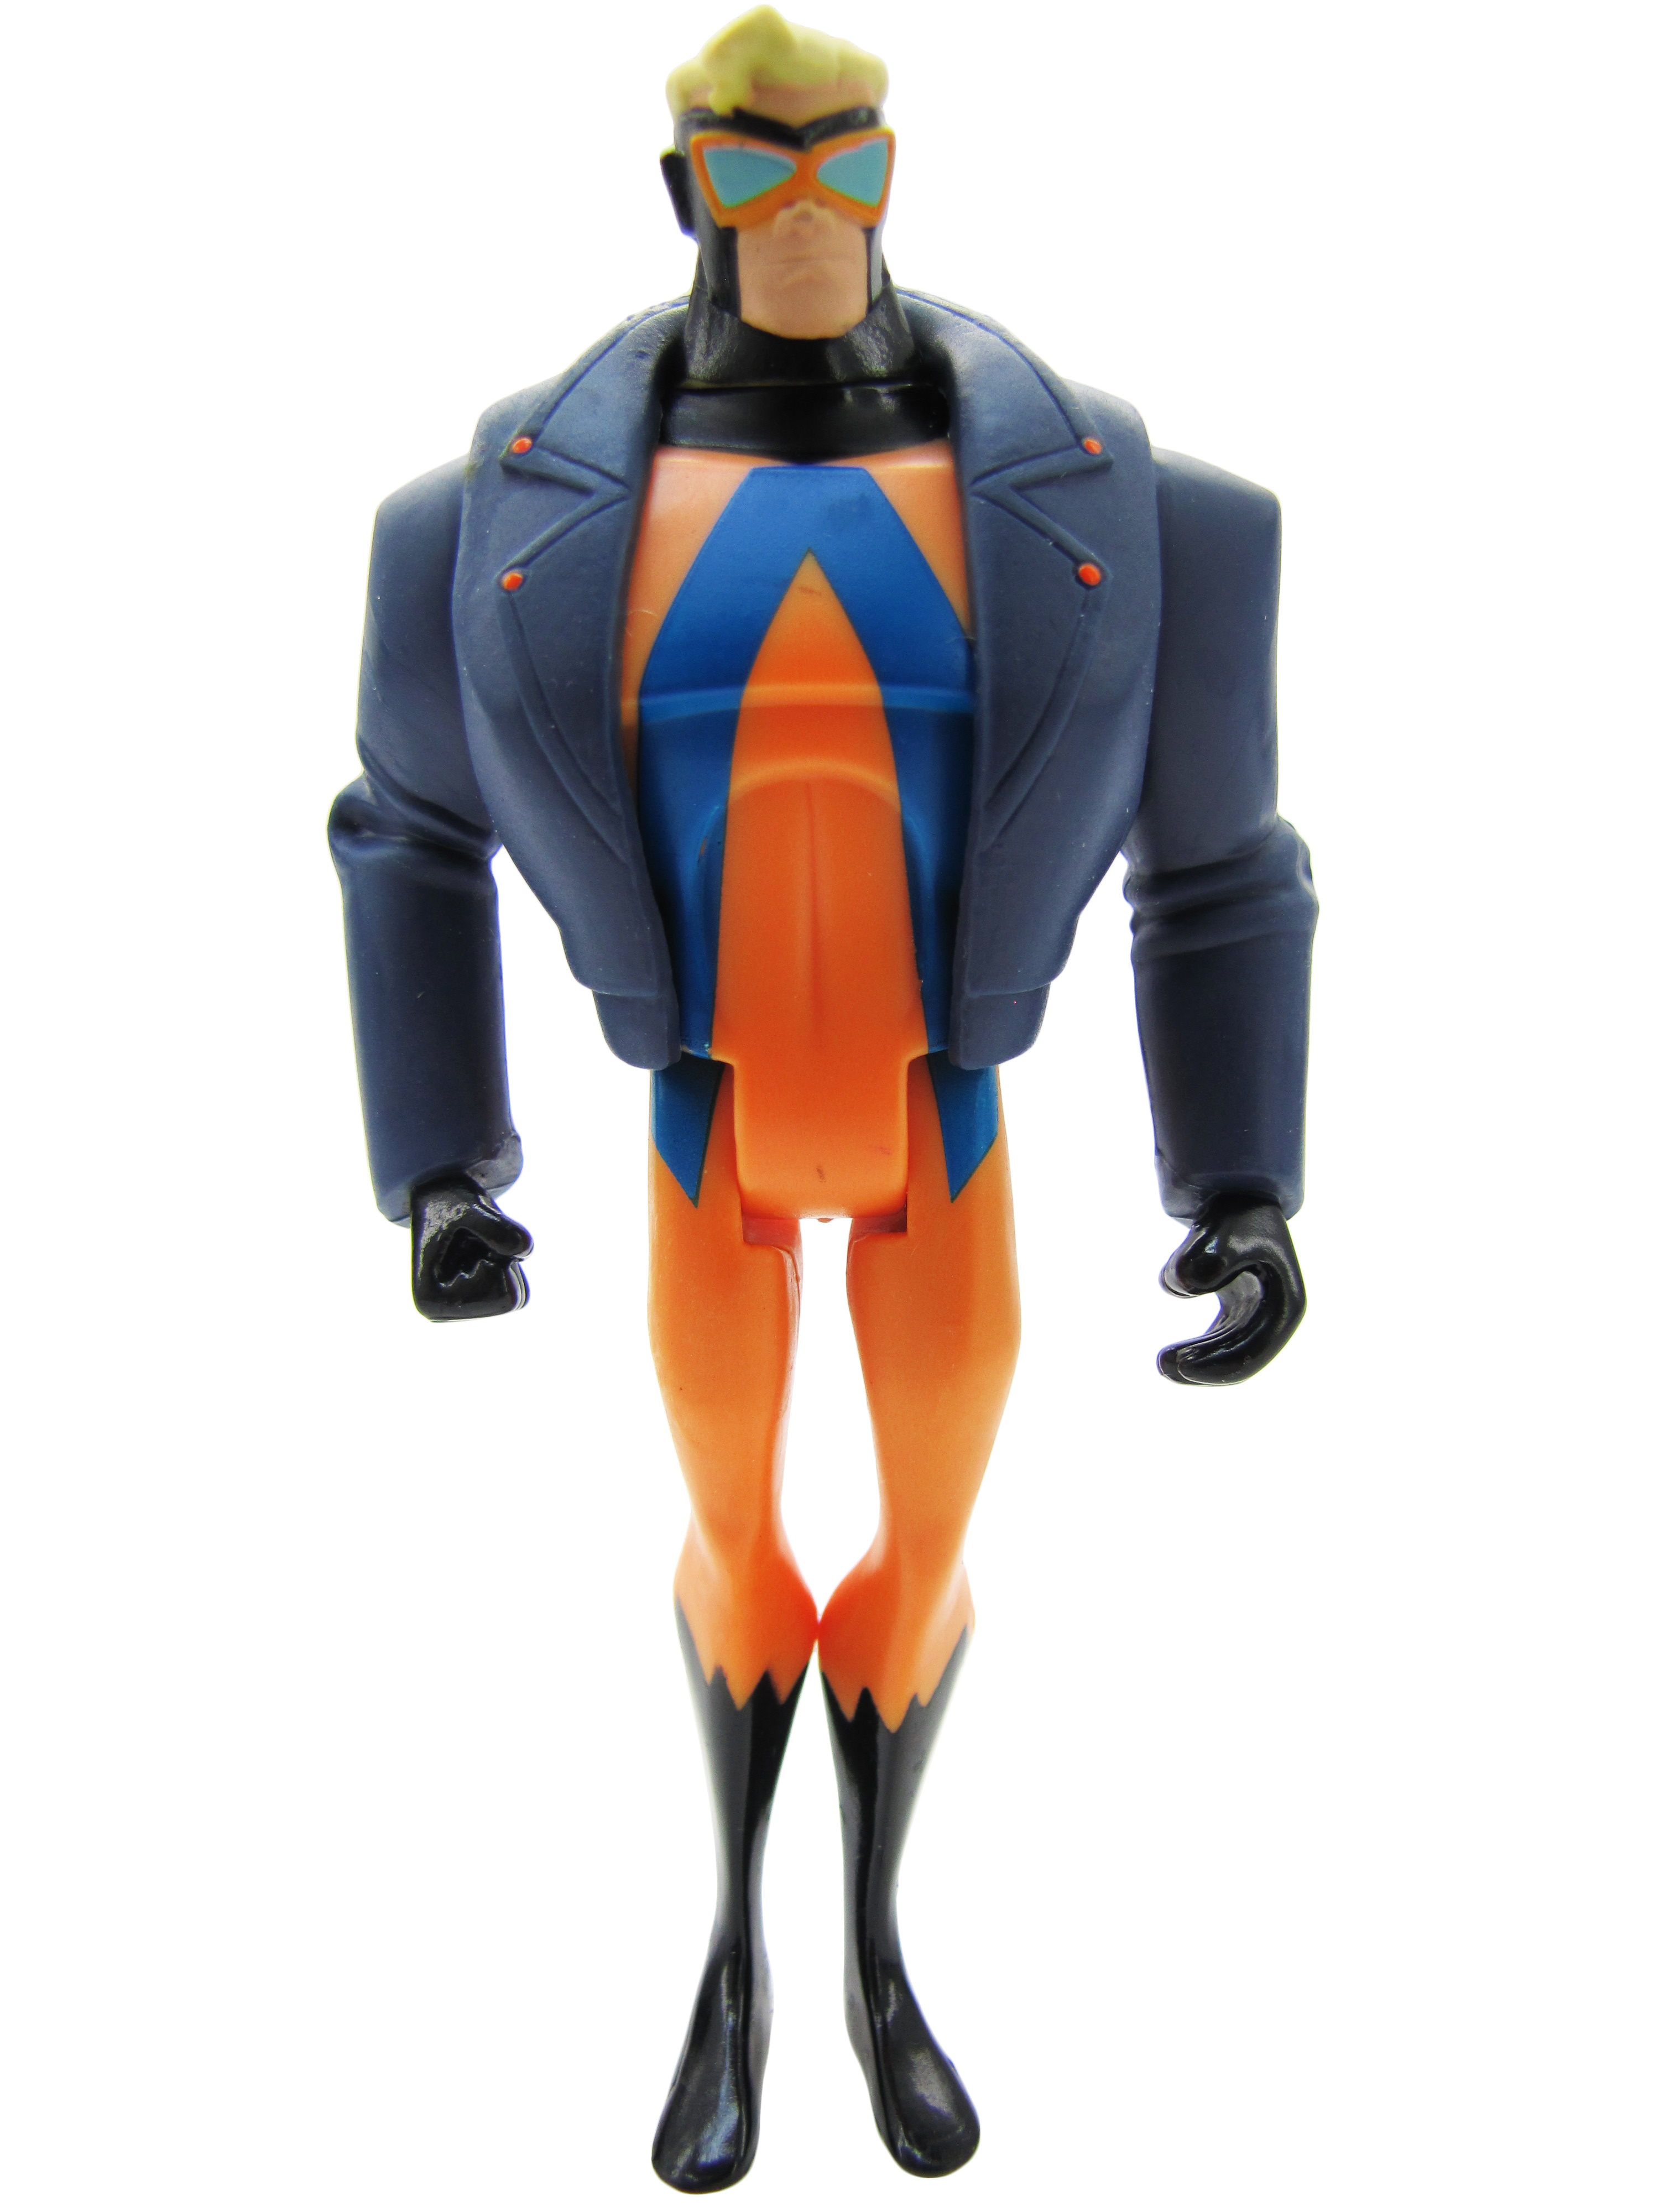 2012 Justice League Unlimited STRANGE ADVENTURES ANIMAL MAN Mint